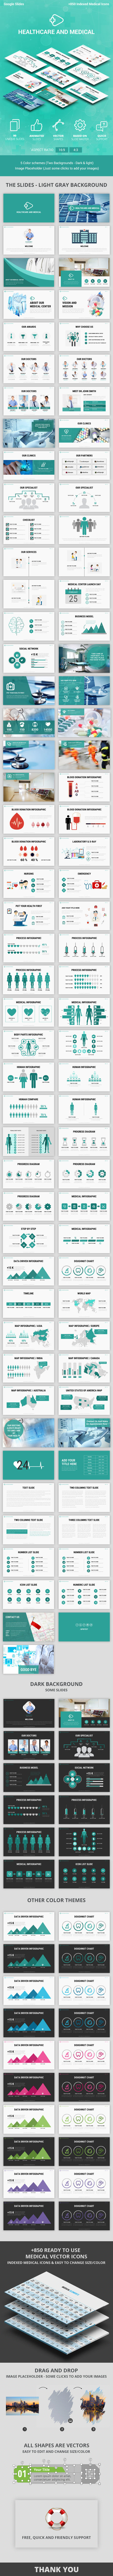 GraphicRiver Healthcare and Medical 2 Google Slides Presentation Template 20945237